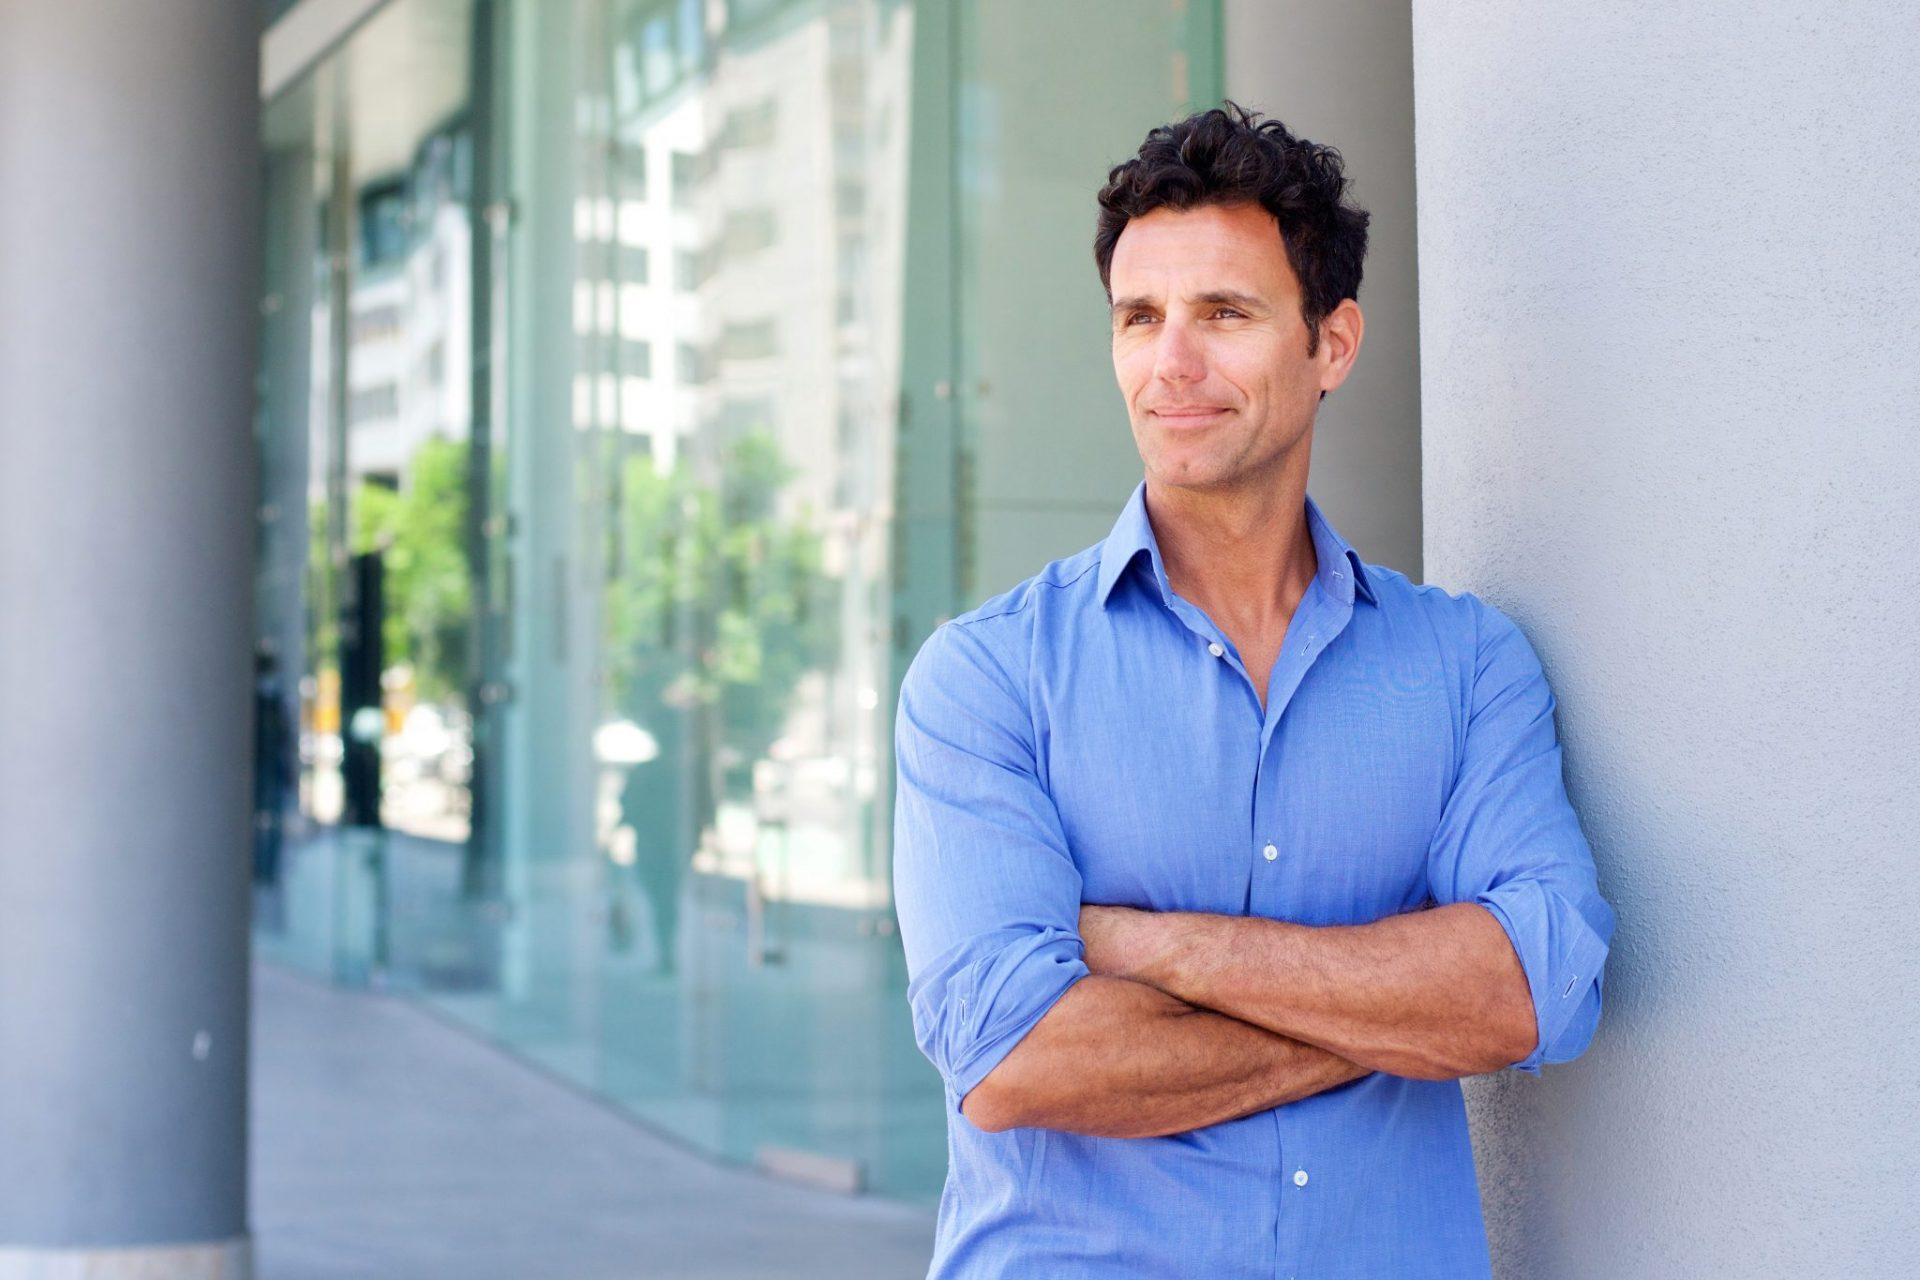 Portrait of a business man with nice hair standing outside with arms crossed